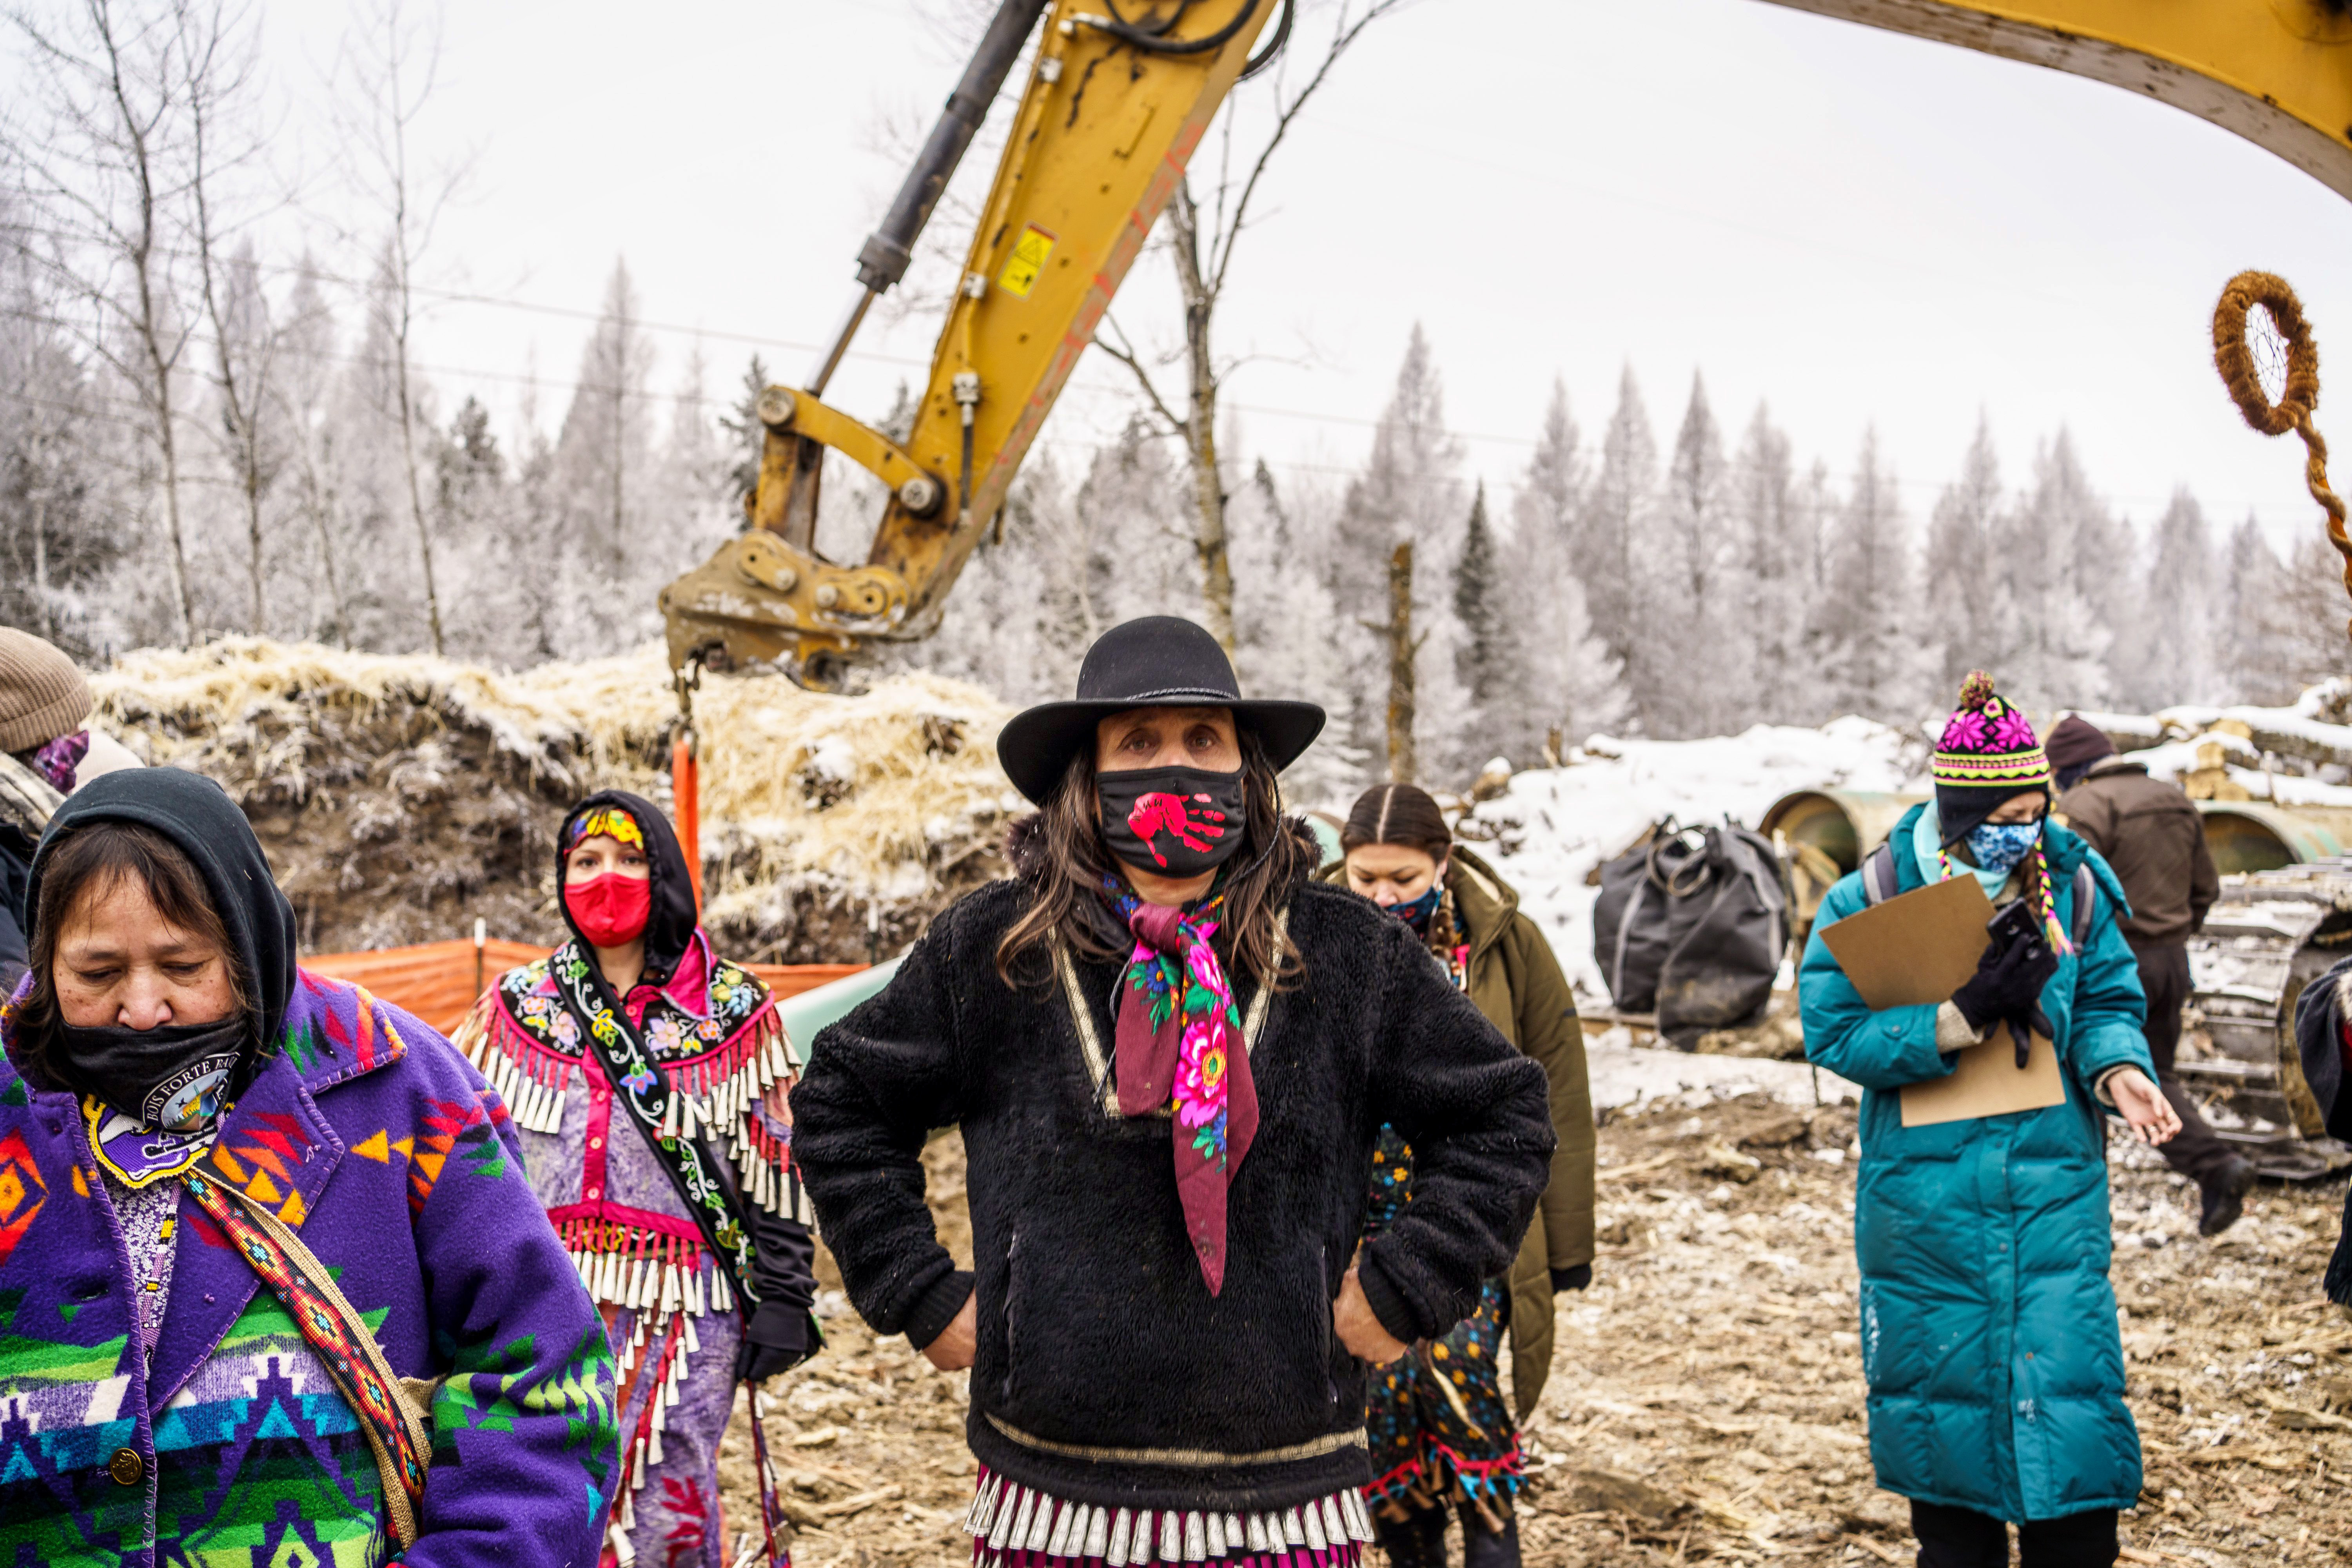 Winona LaDuke, center, and water protectors stand in front of the Line 3 construction site in January. Winona's hands at her hips. She has on a black mask, with a red handprint across the front of the mask. Large yellow crane in background. Water protectors dressed in indigenous garb and wearing masks.